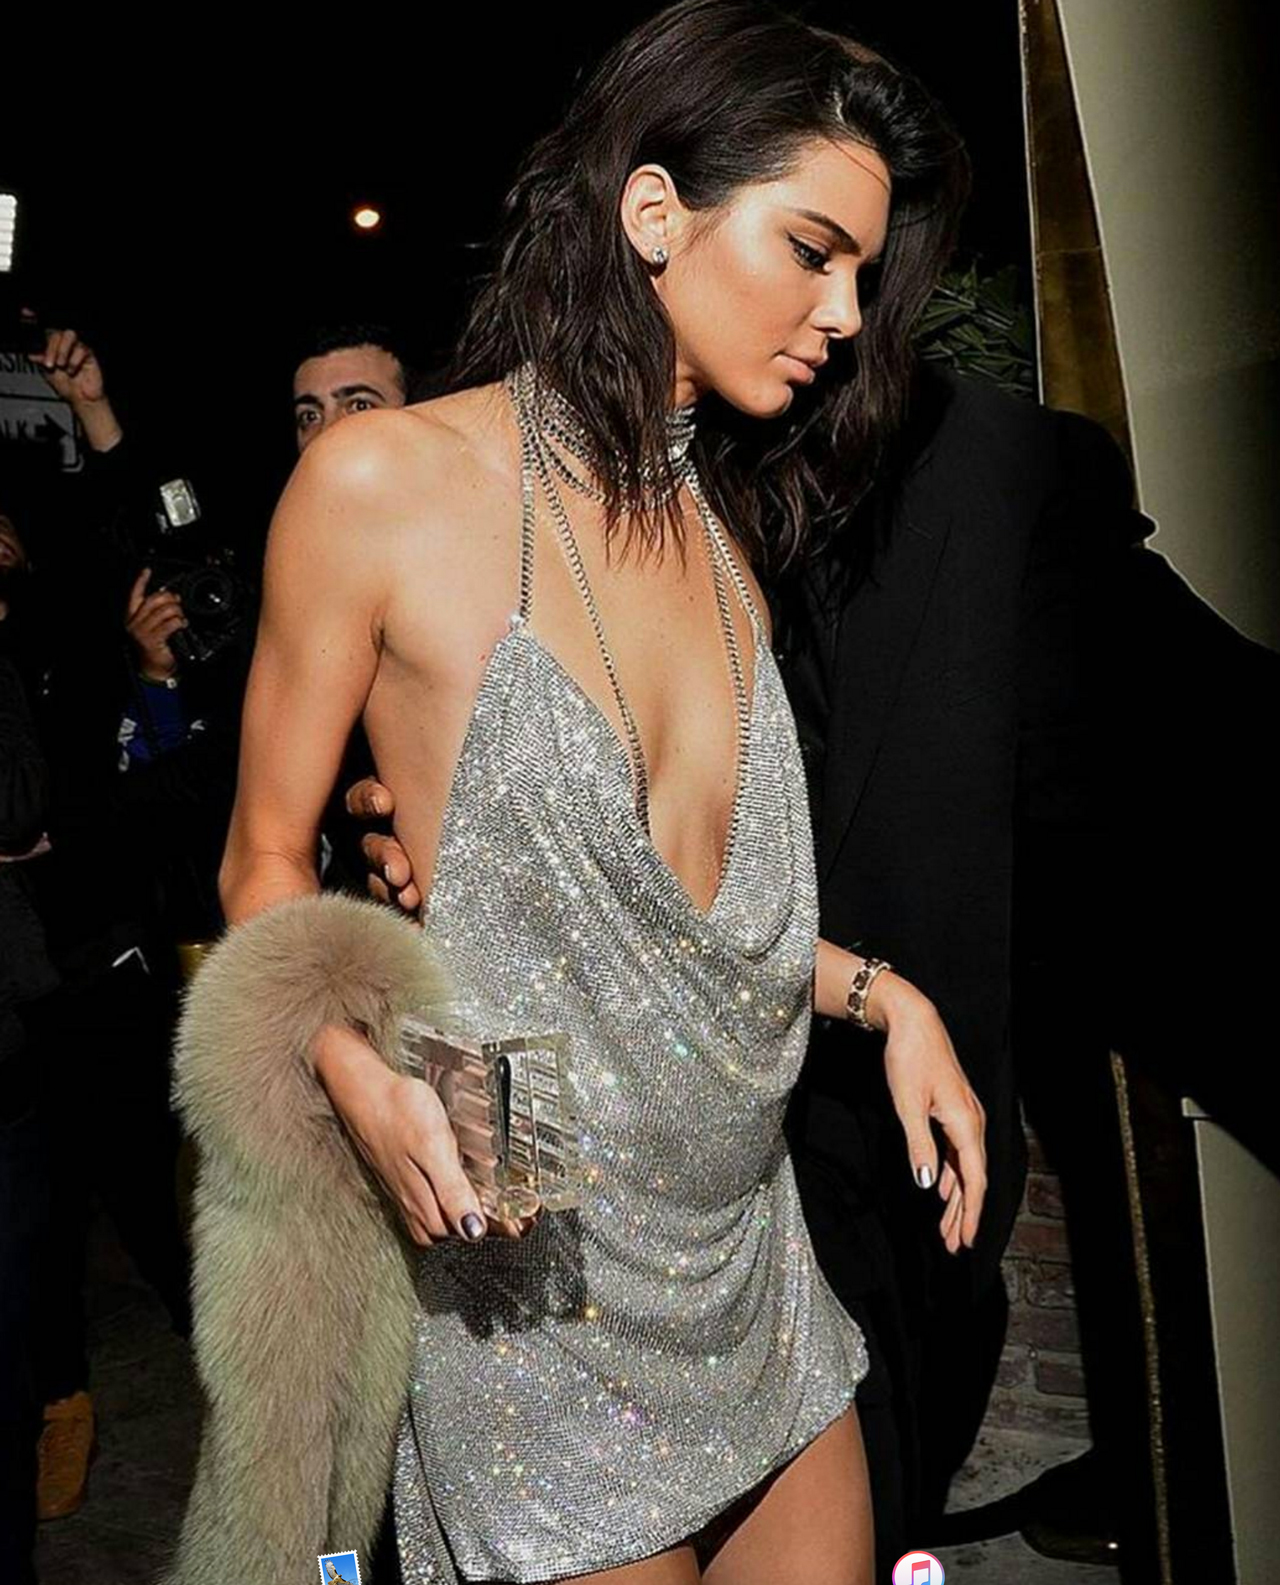 3f451392913c 12 questions we had about Kendall Jenner's 21st birthday - Grazia ...